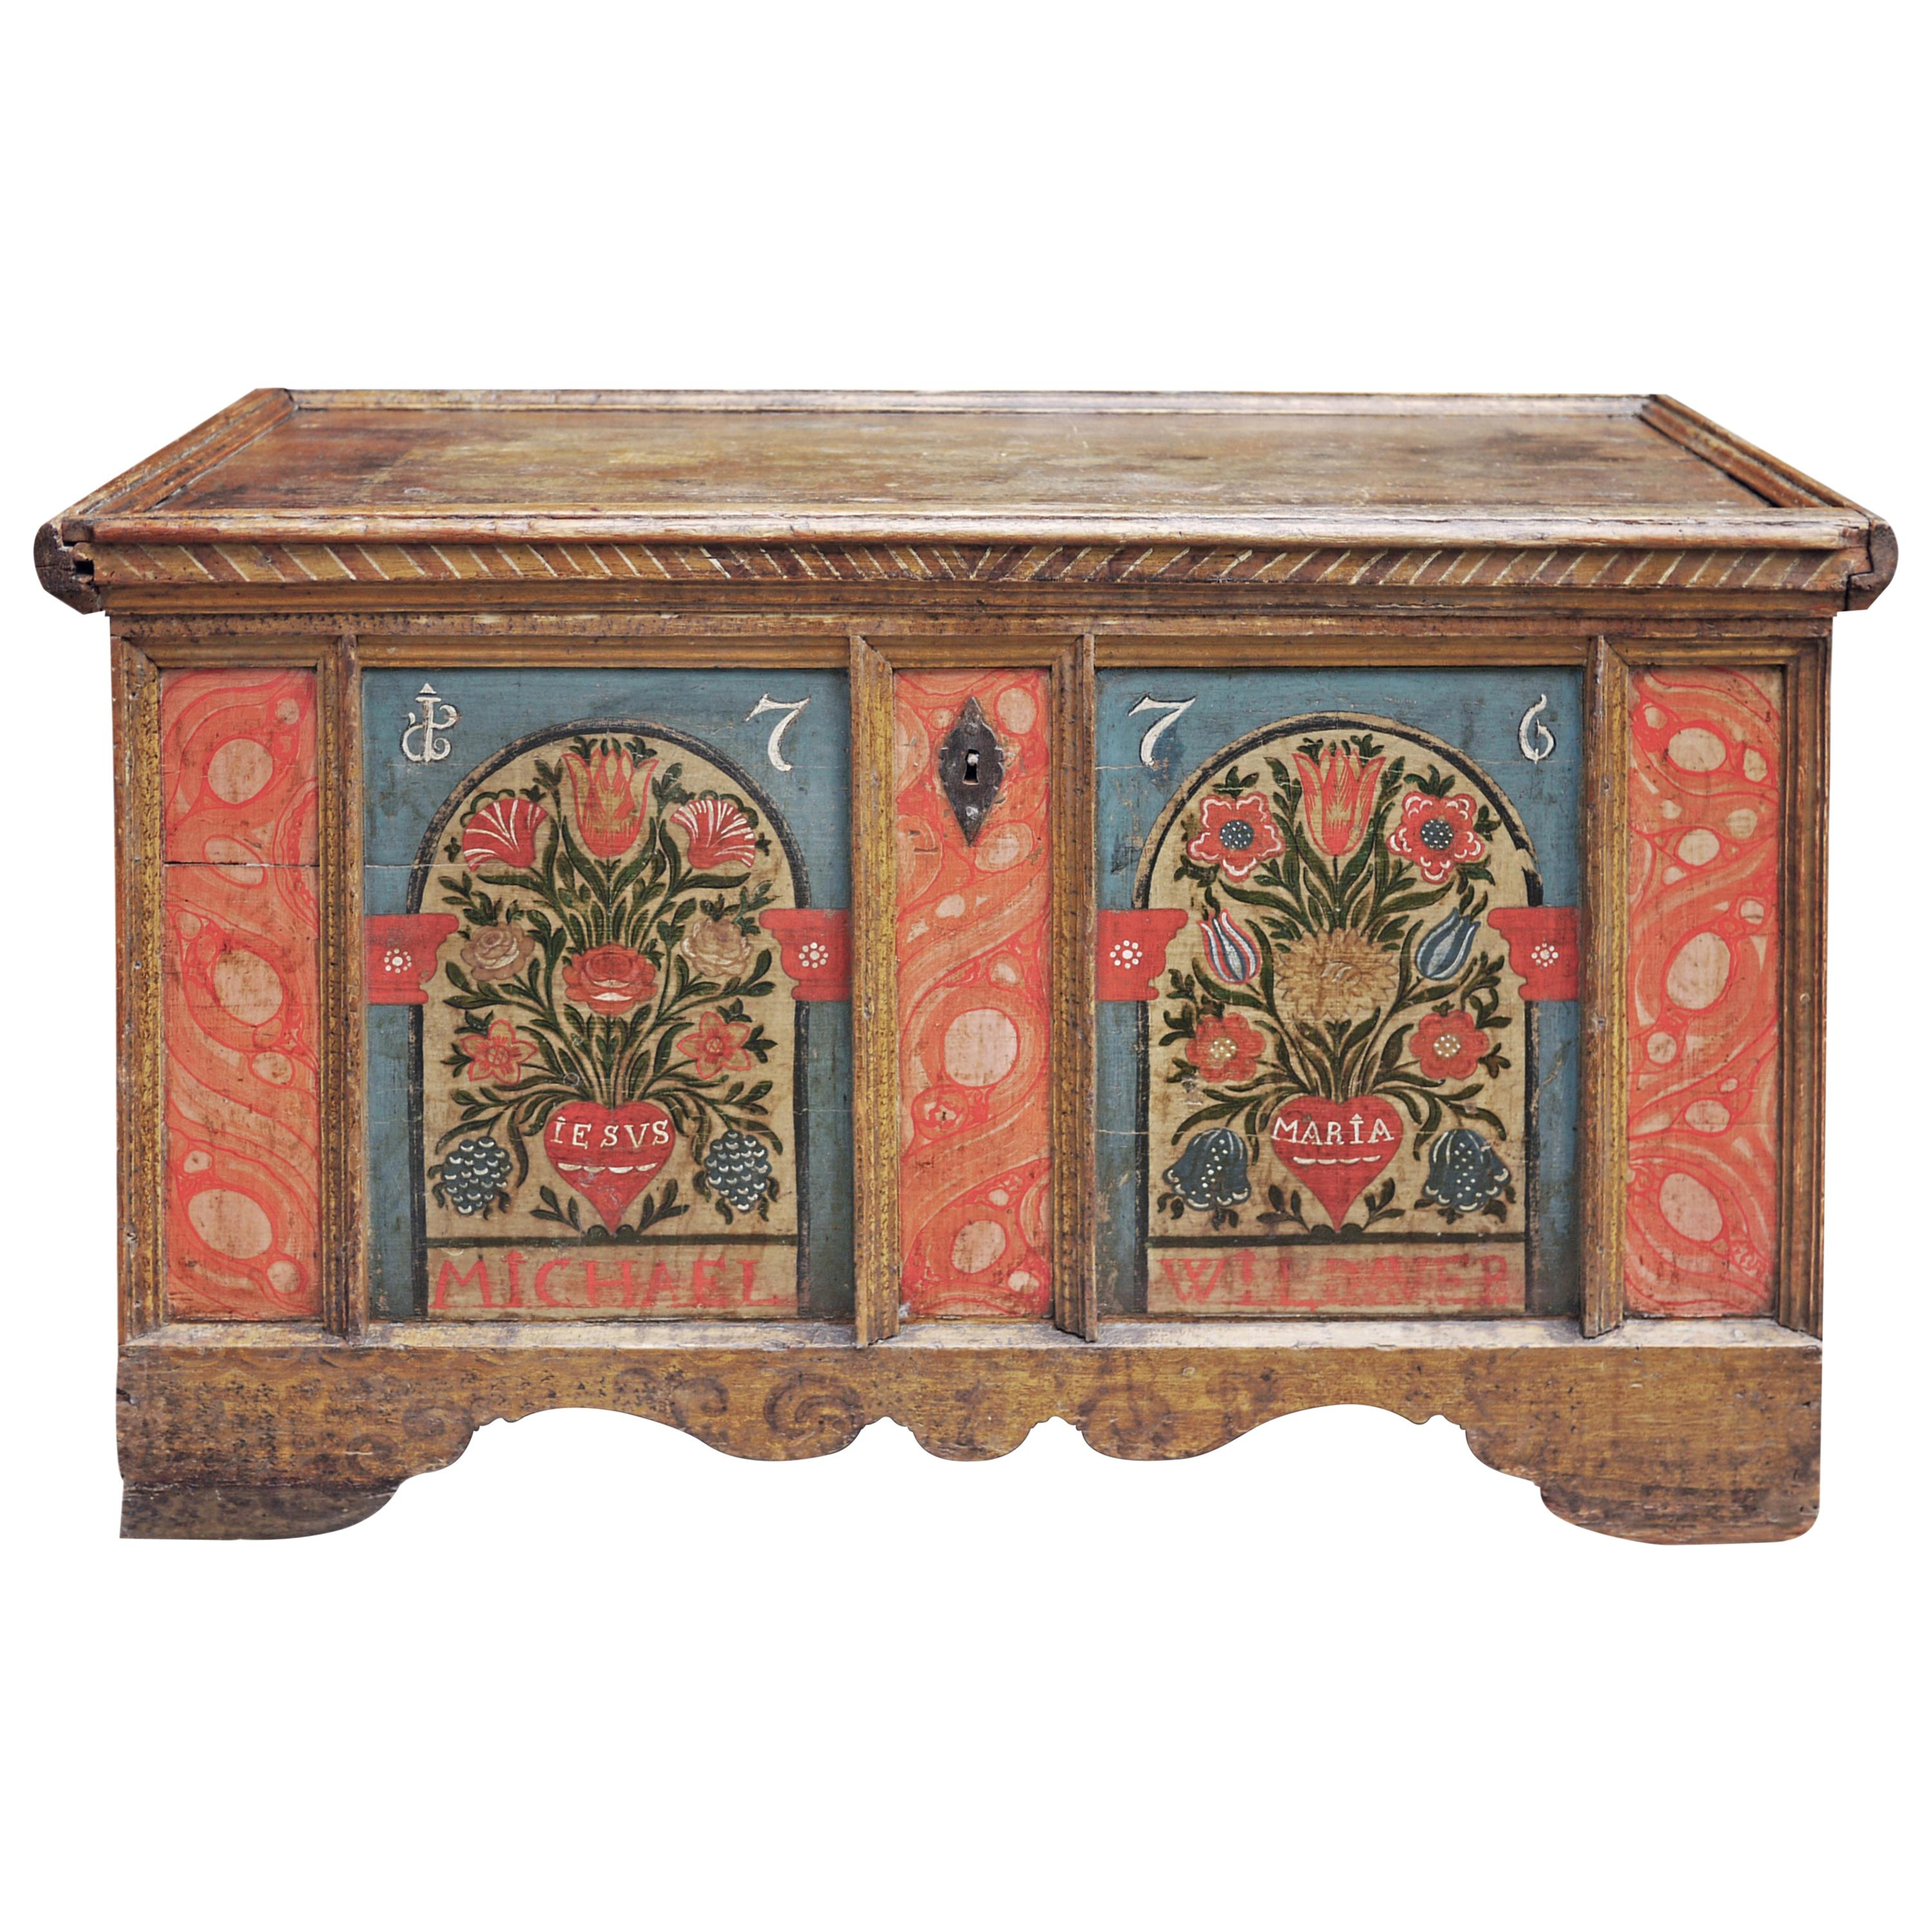 Exceptional Floral Painted Blue and Red Blanket Chest, Alps 1776 - Original